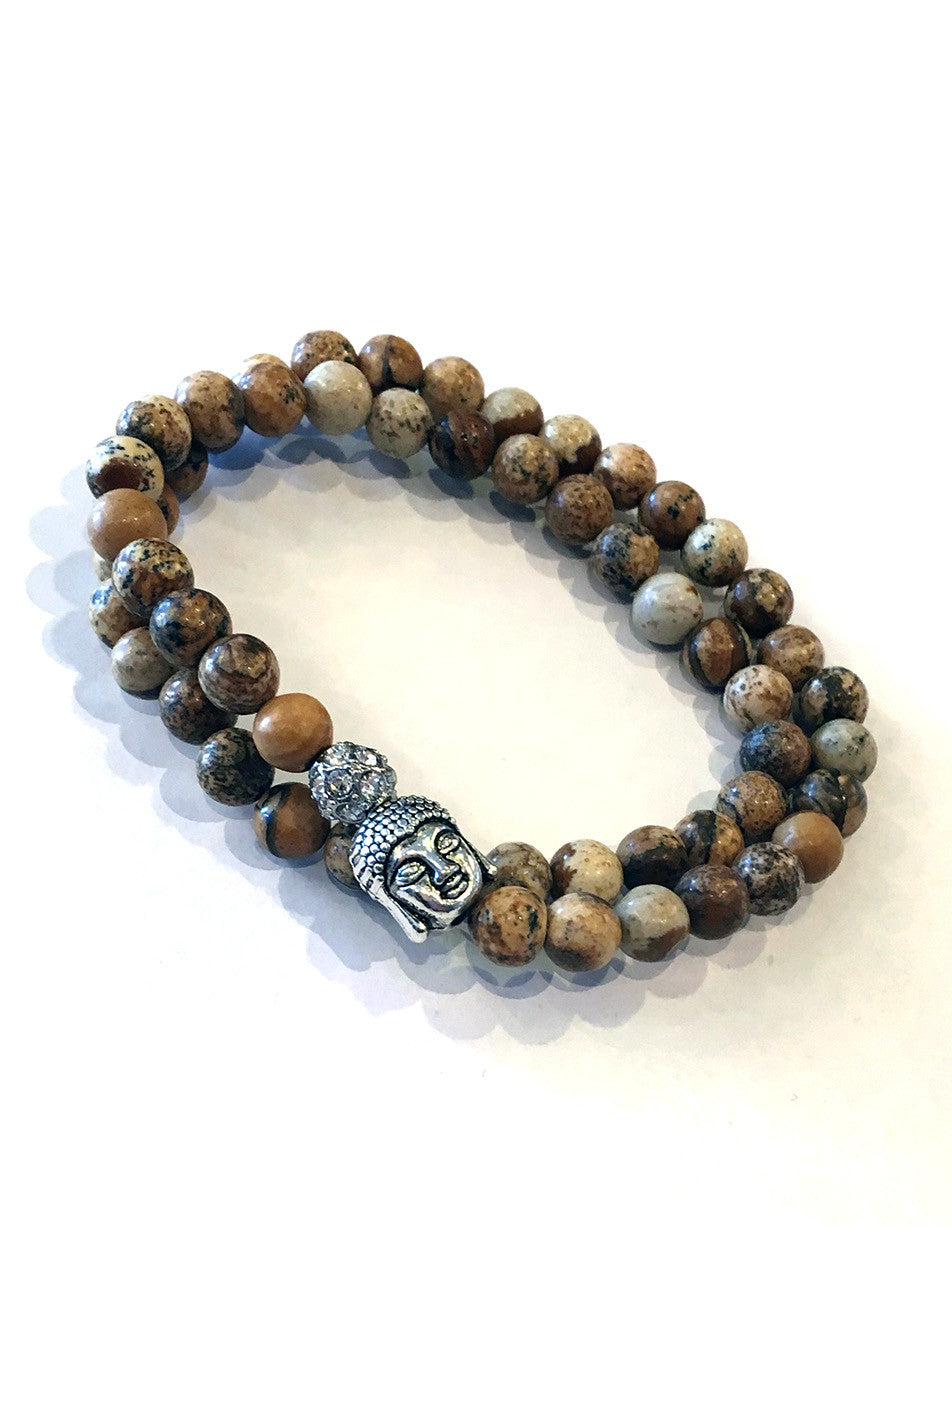 Double Wrap Stretch Buddha Bracelet/Choker